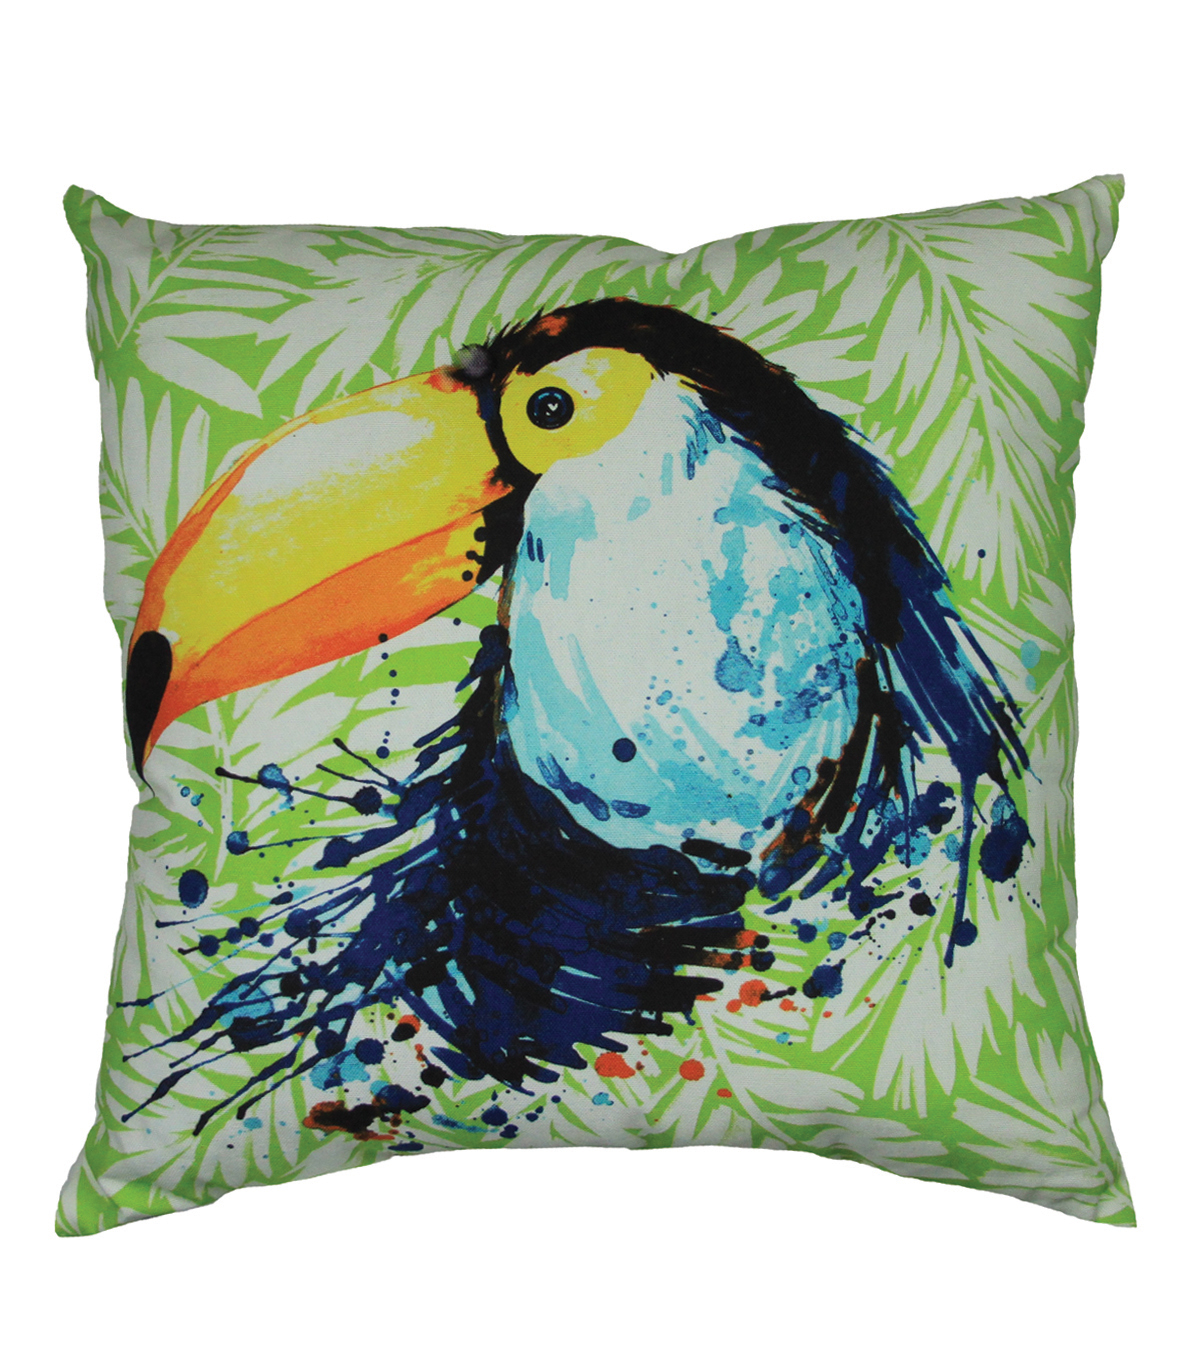 Summer Sol Square Outdoor Pillow-Tuffin Toucan Leaf